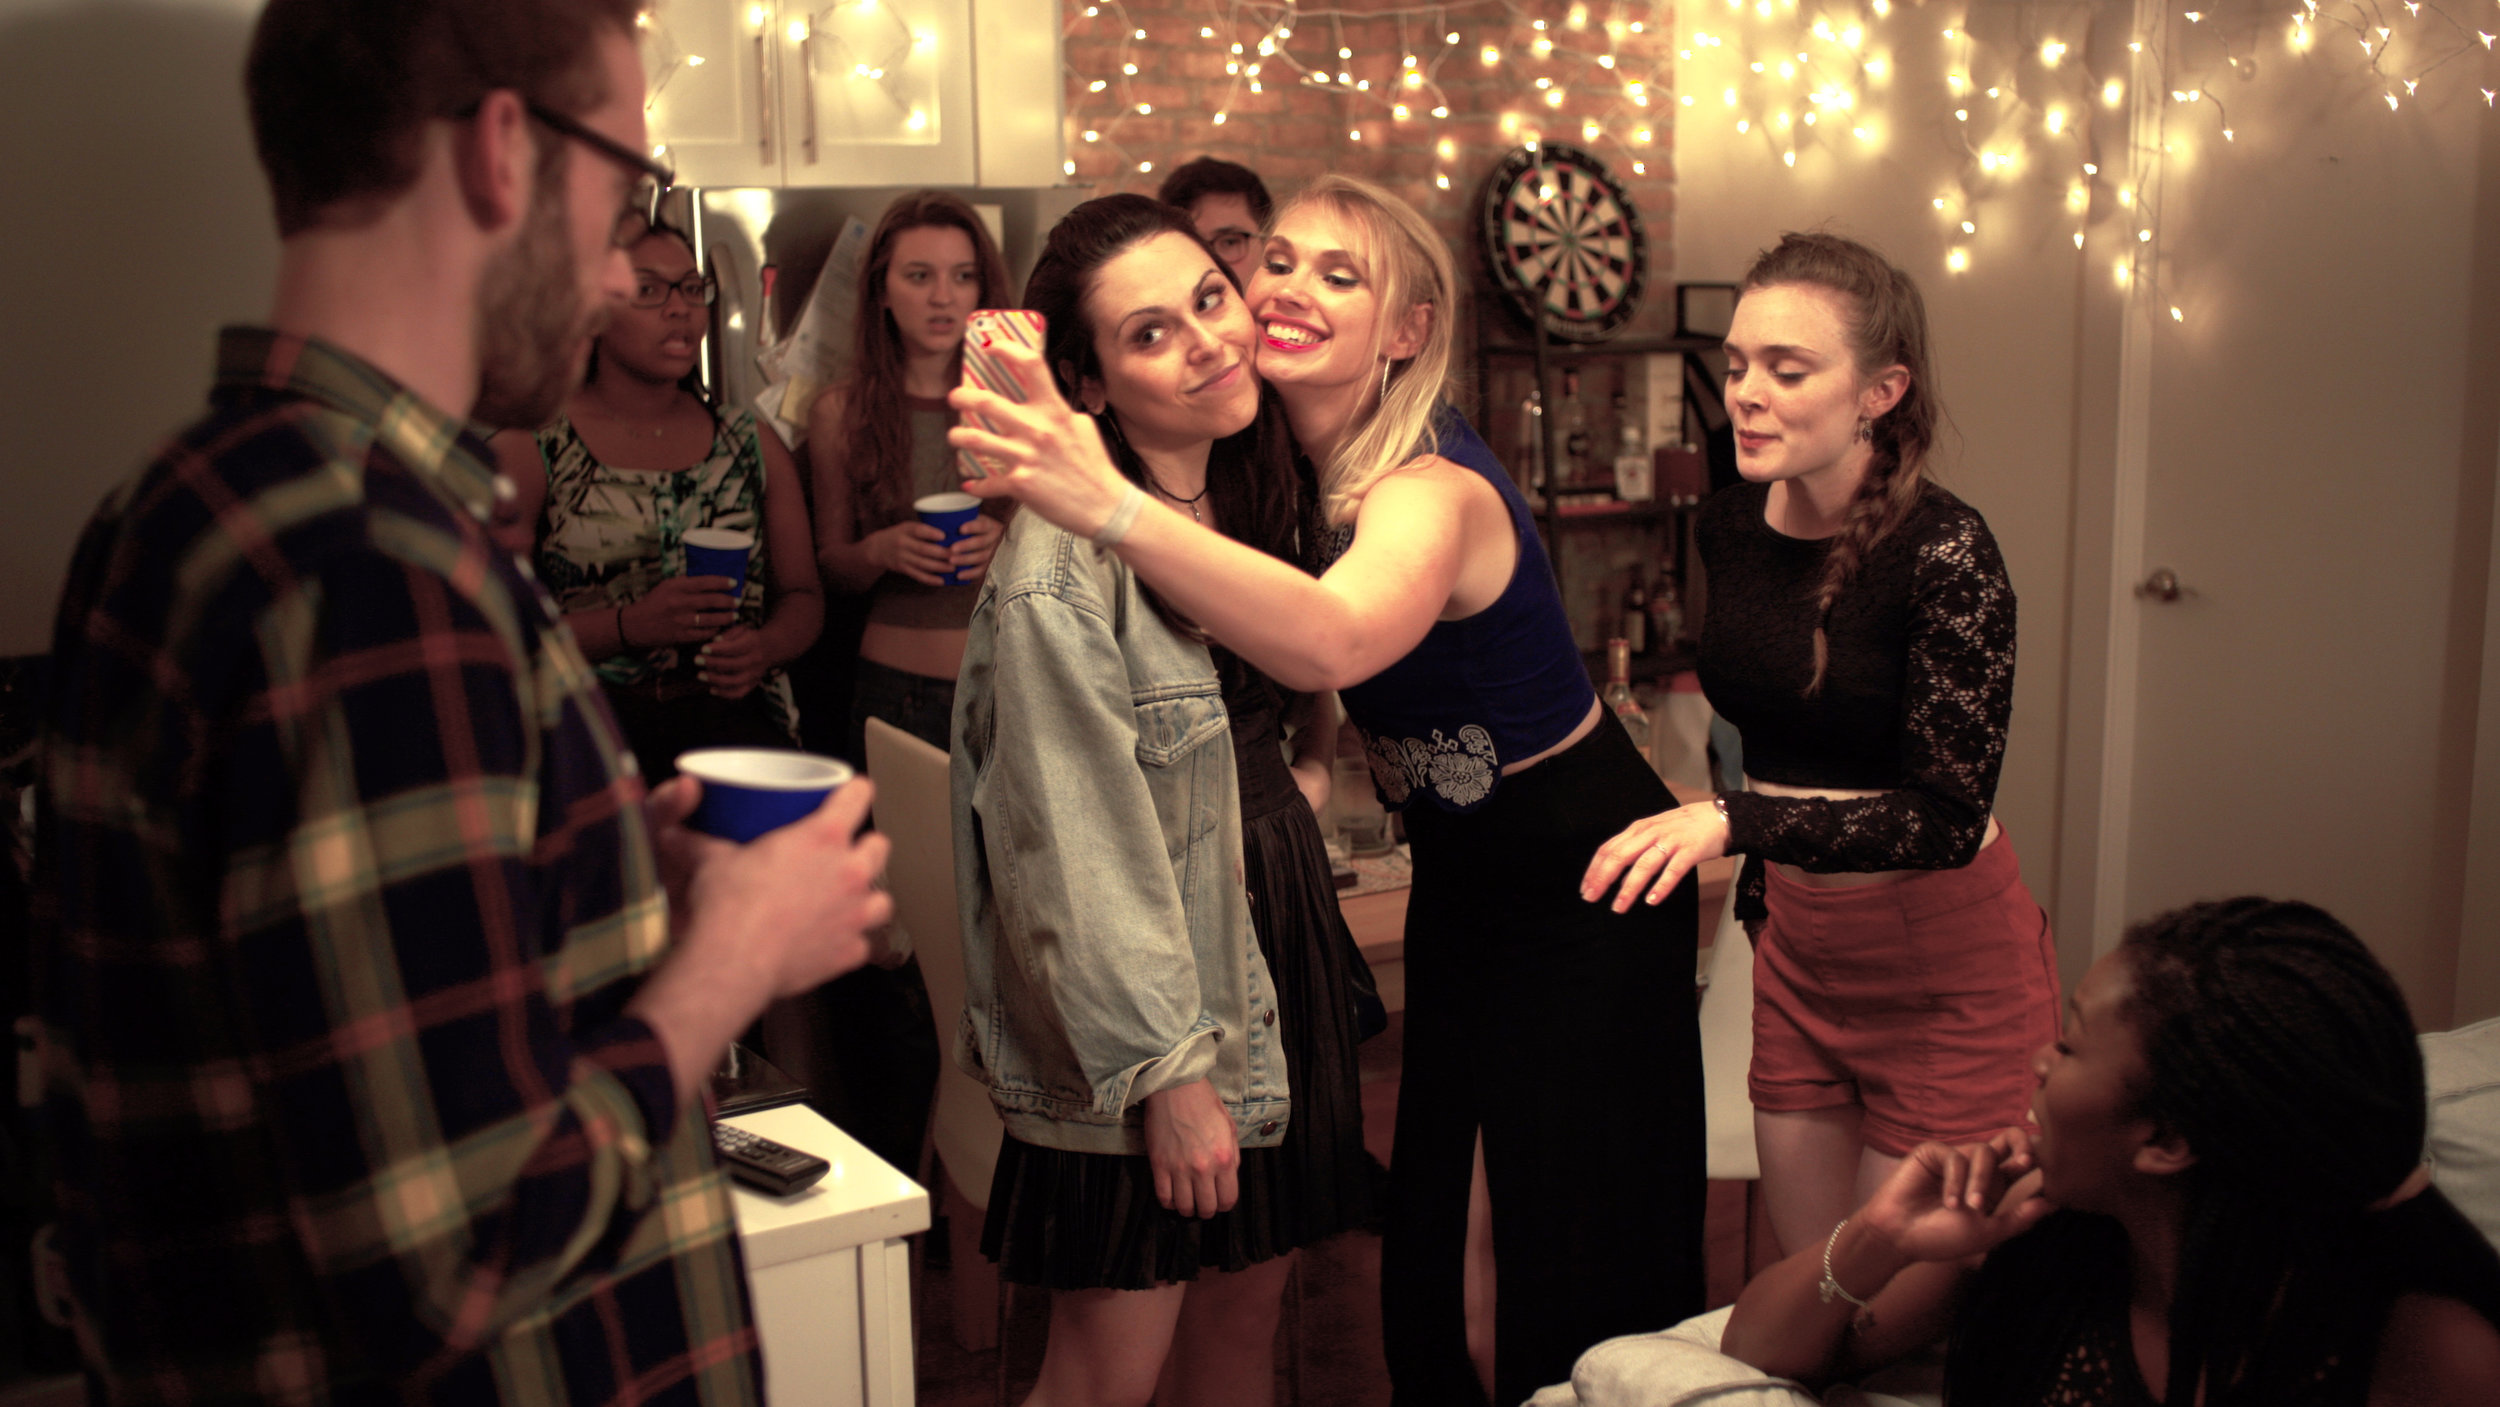 Kat meets a fan at a party, confirming her worst fears about interacting with other people.